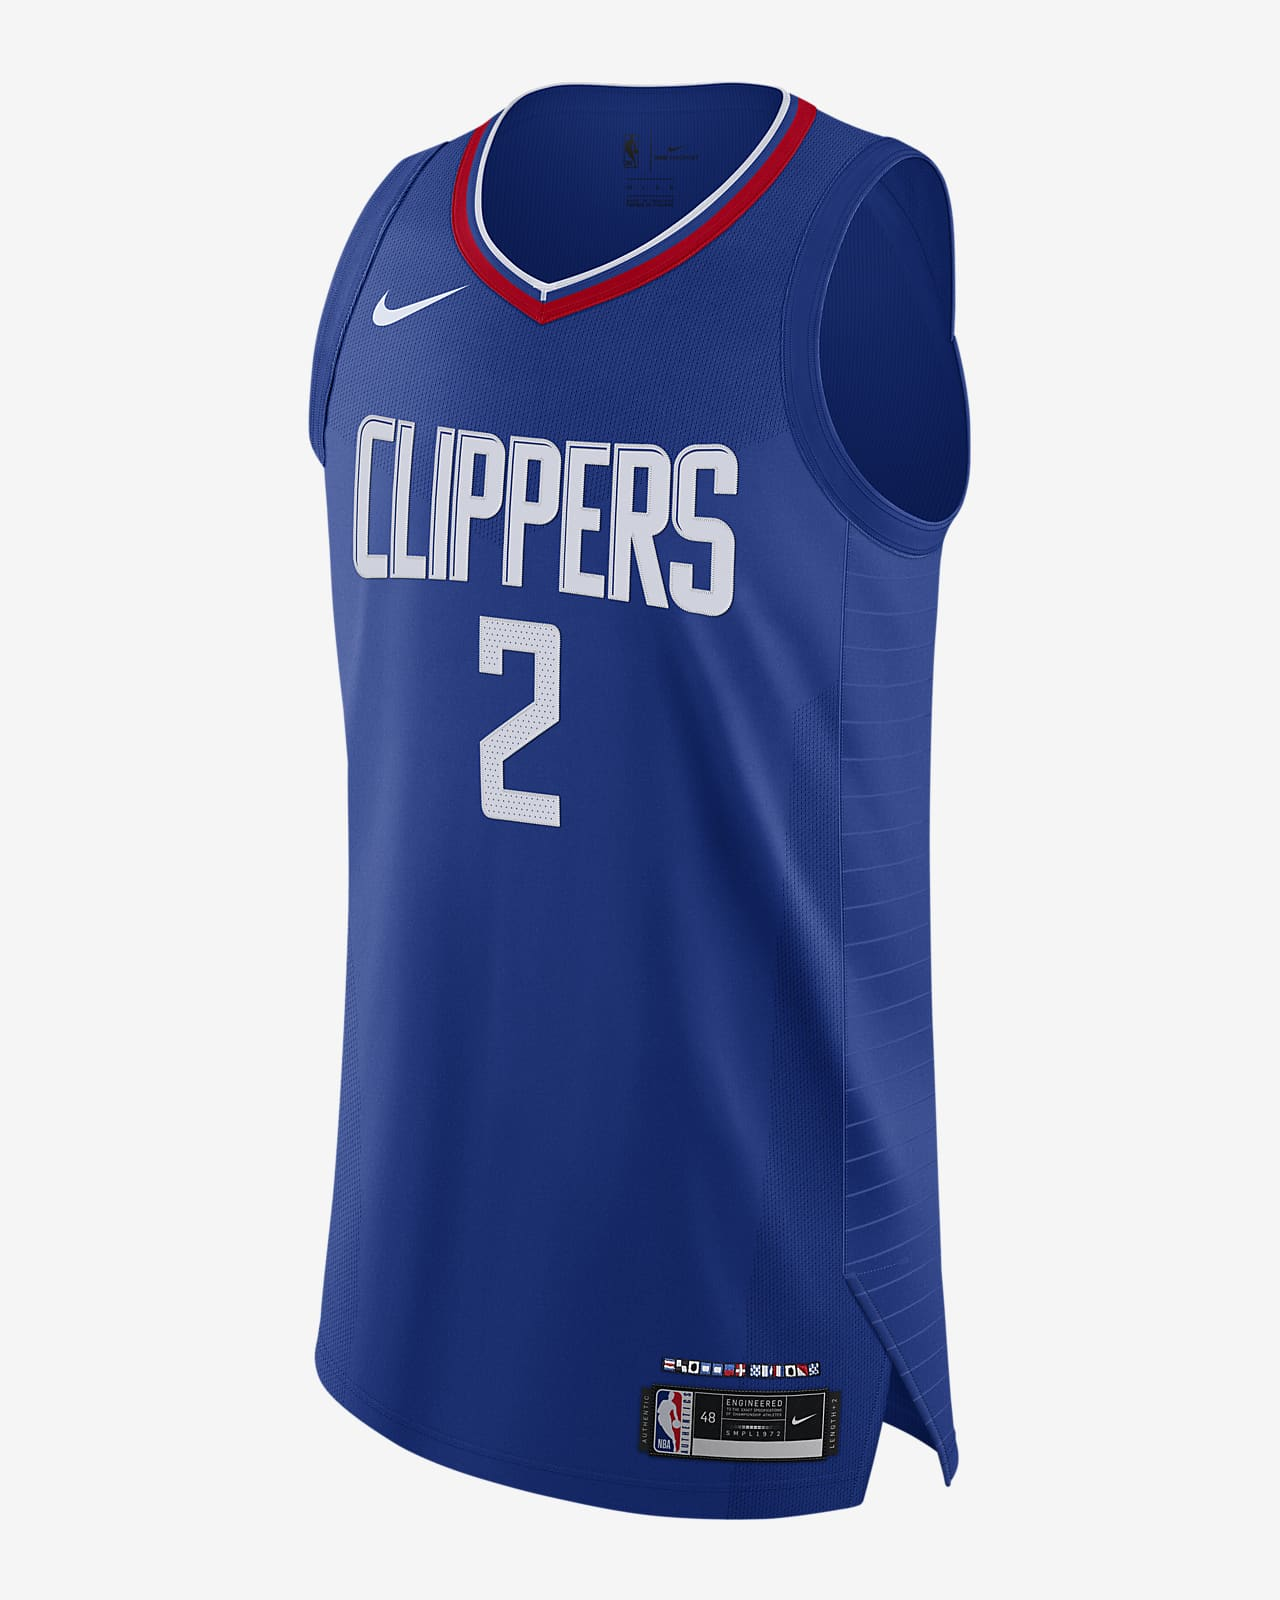 Kawhi Leonard Clippers Icon Edition 2020 Nike NBA Authentic Jersey